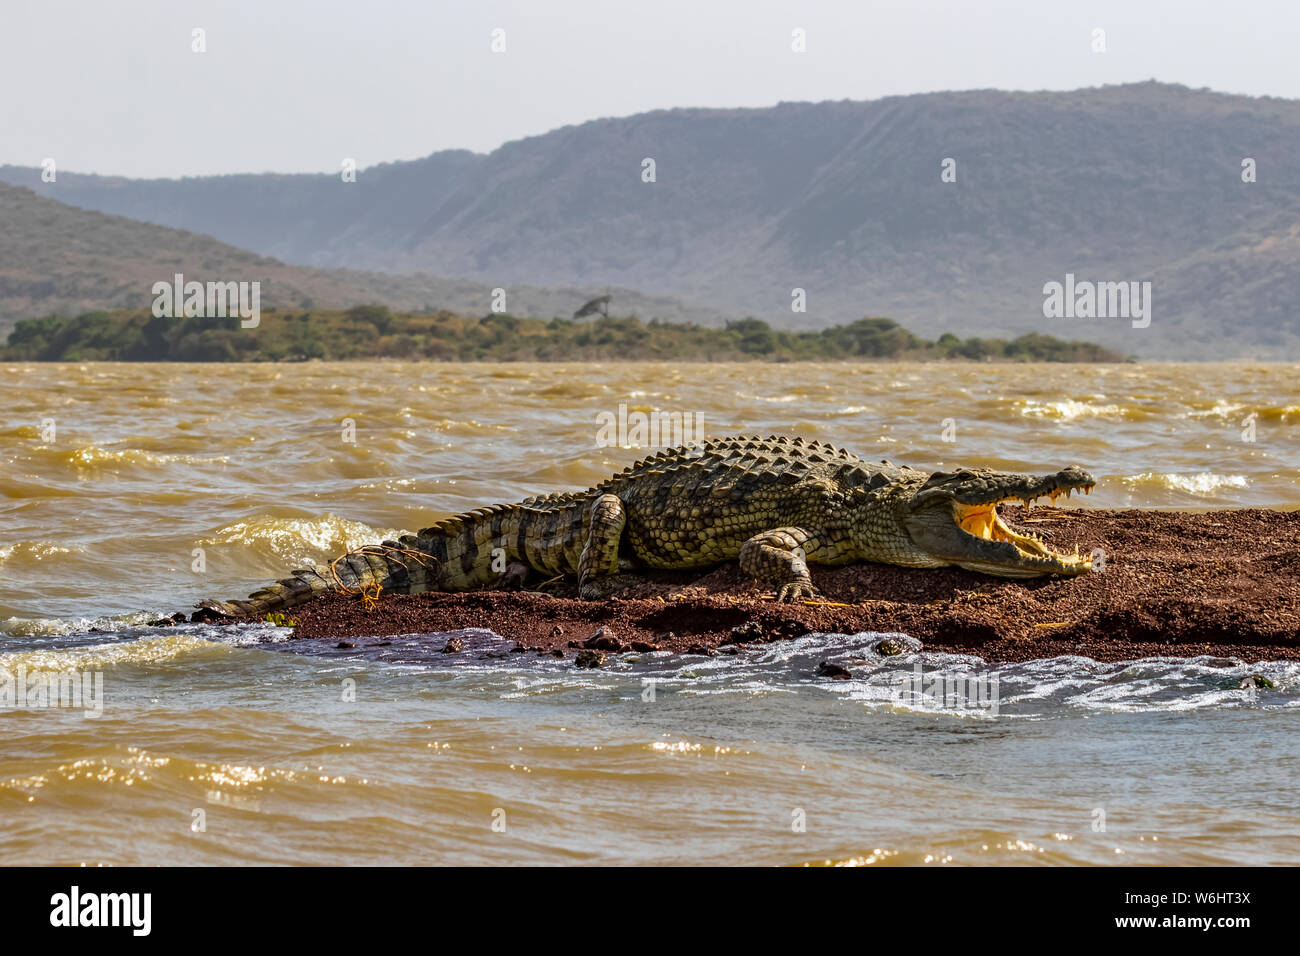 Nile crocodile (Crocodylus niloticus) in Chamo Lake, Nechisar National Park; Ethiopia Stock Photo